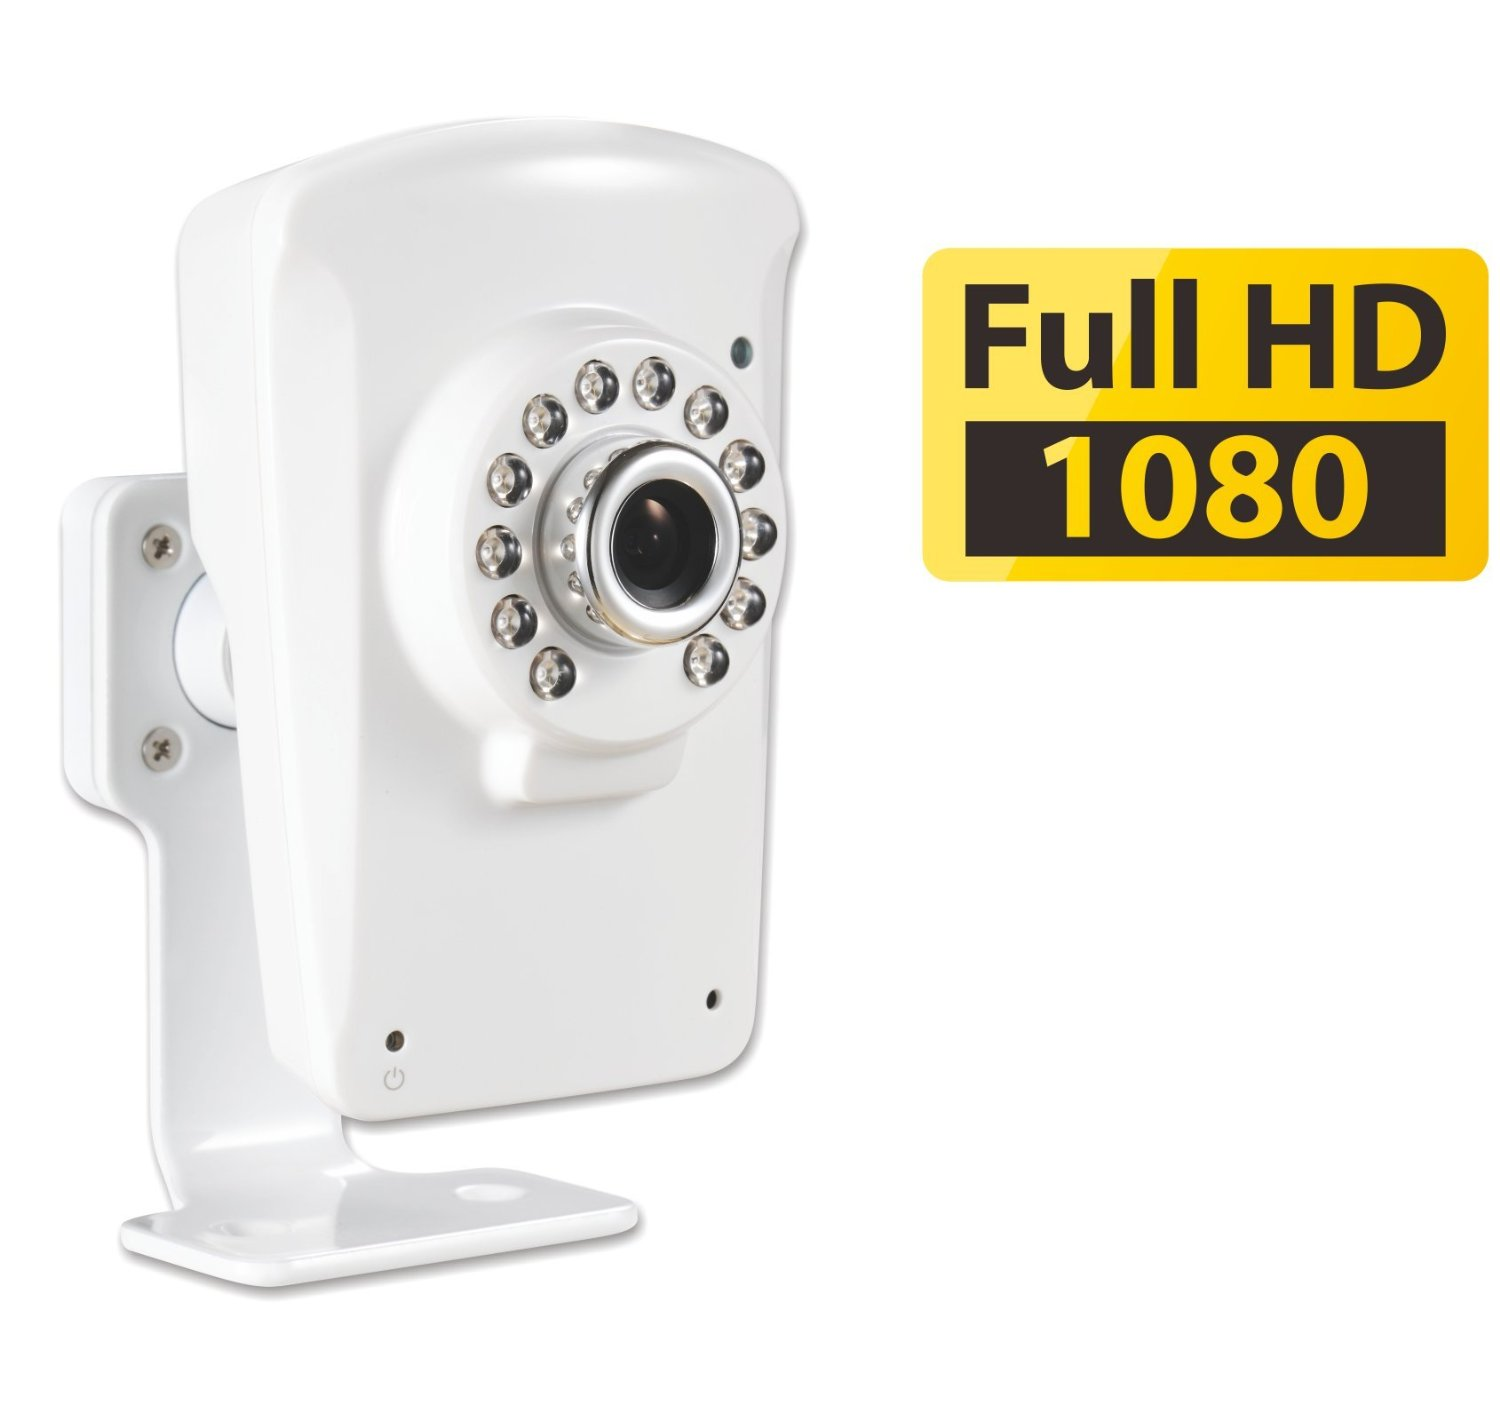 Phylink Wireless Security Systems